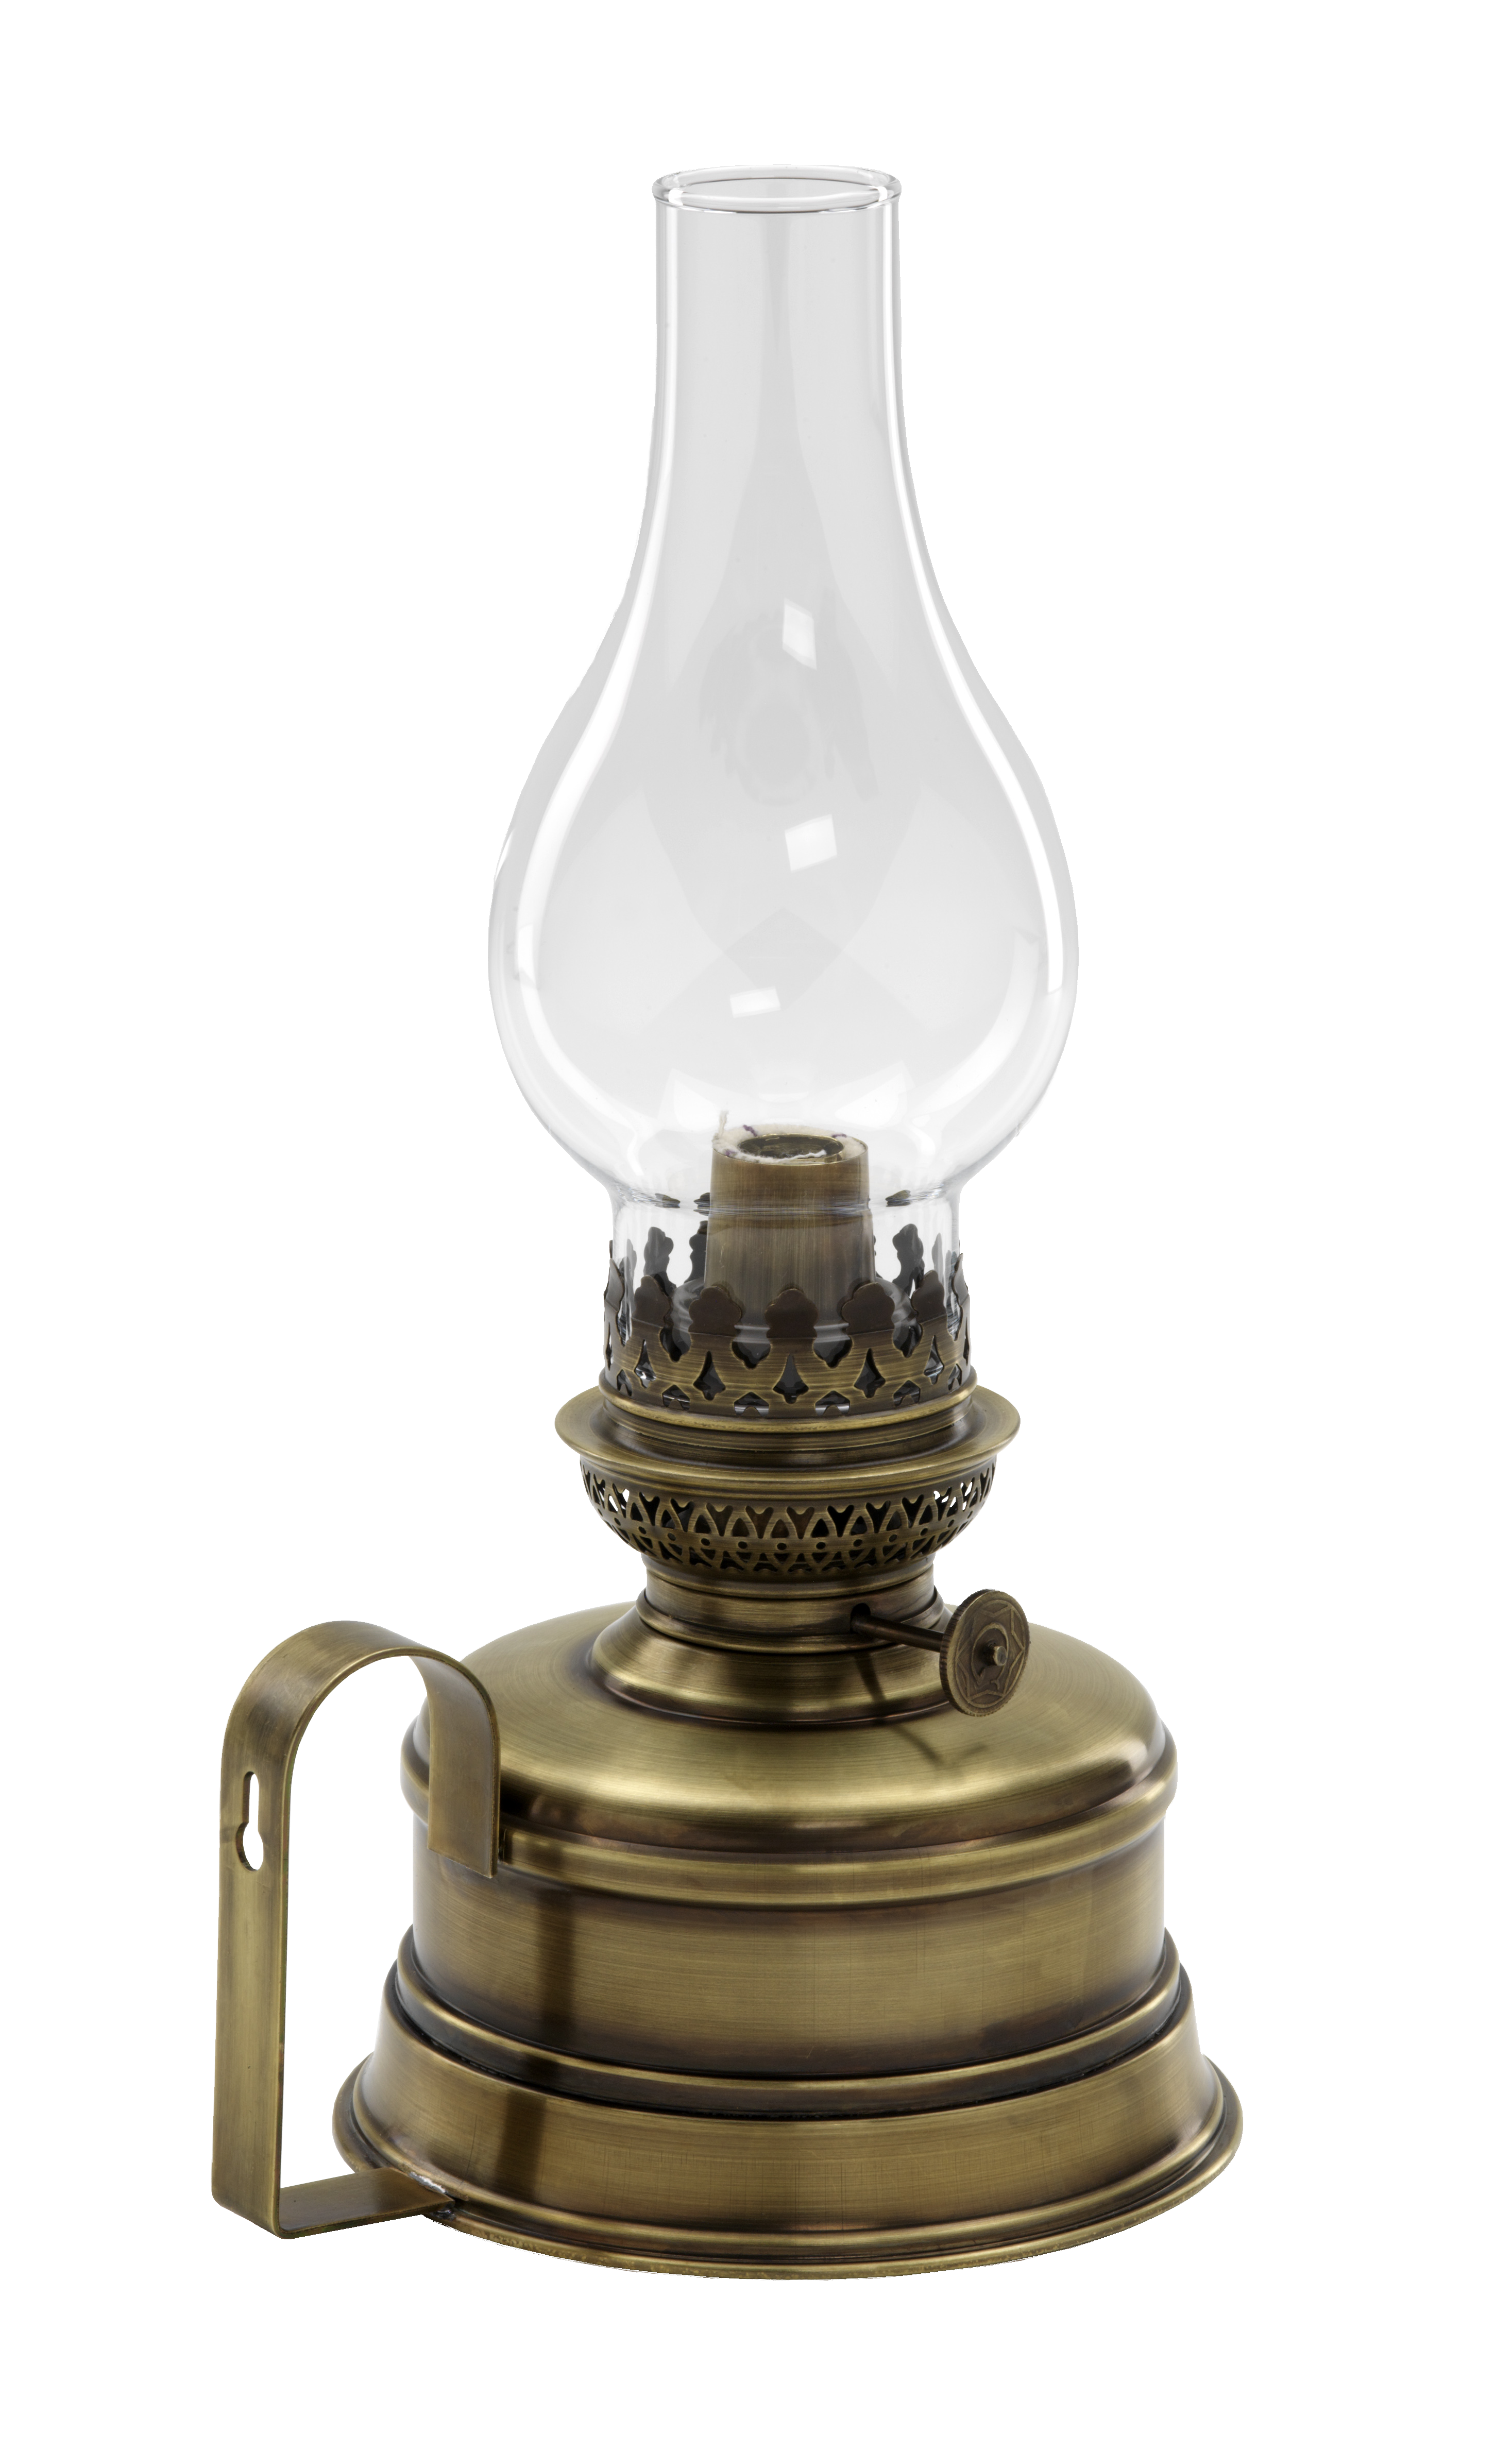 Ets A Et P Gaudard Petrol Lamps Oil Lamps Handmade French